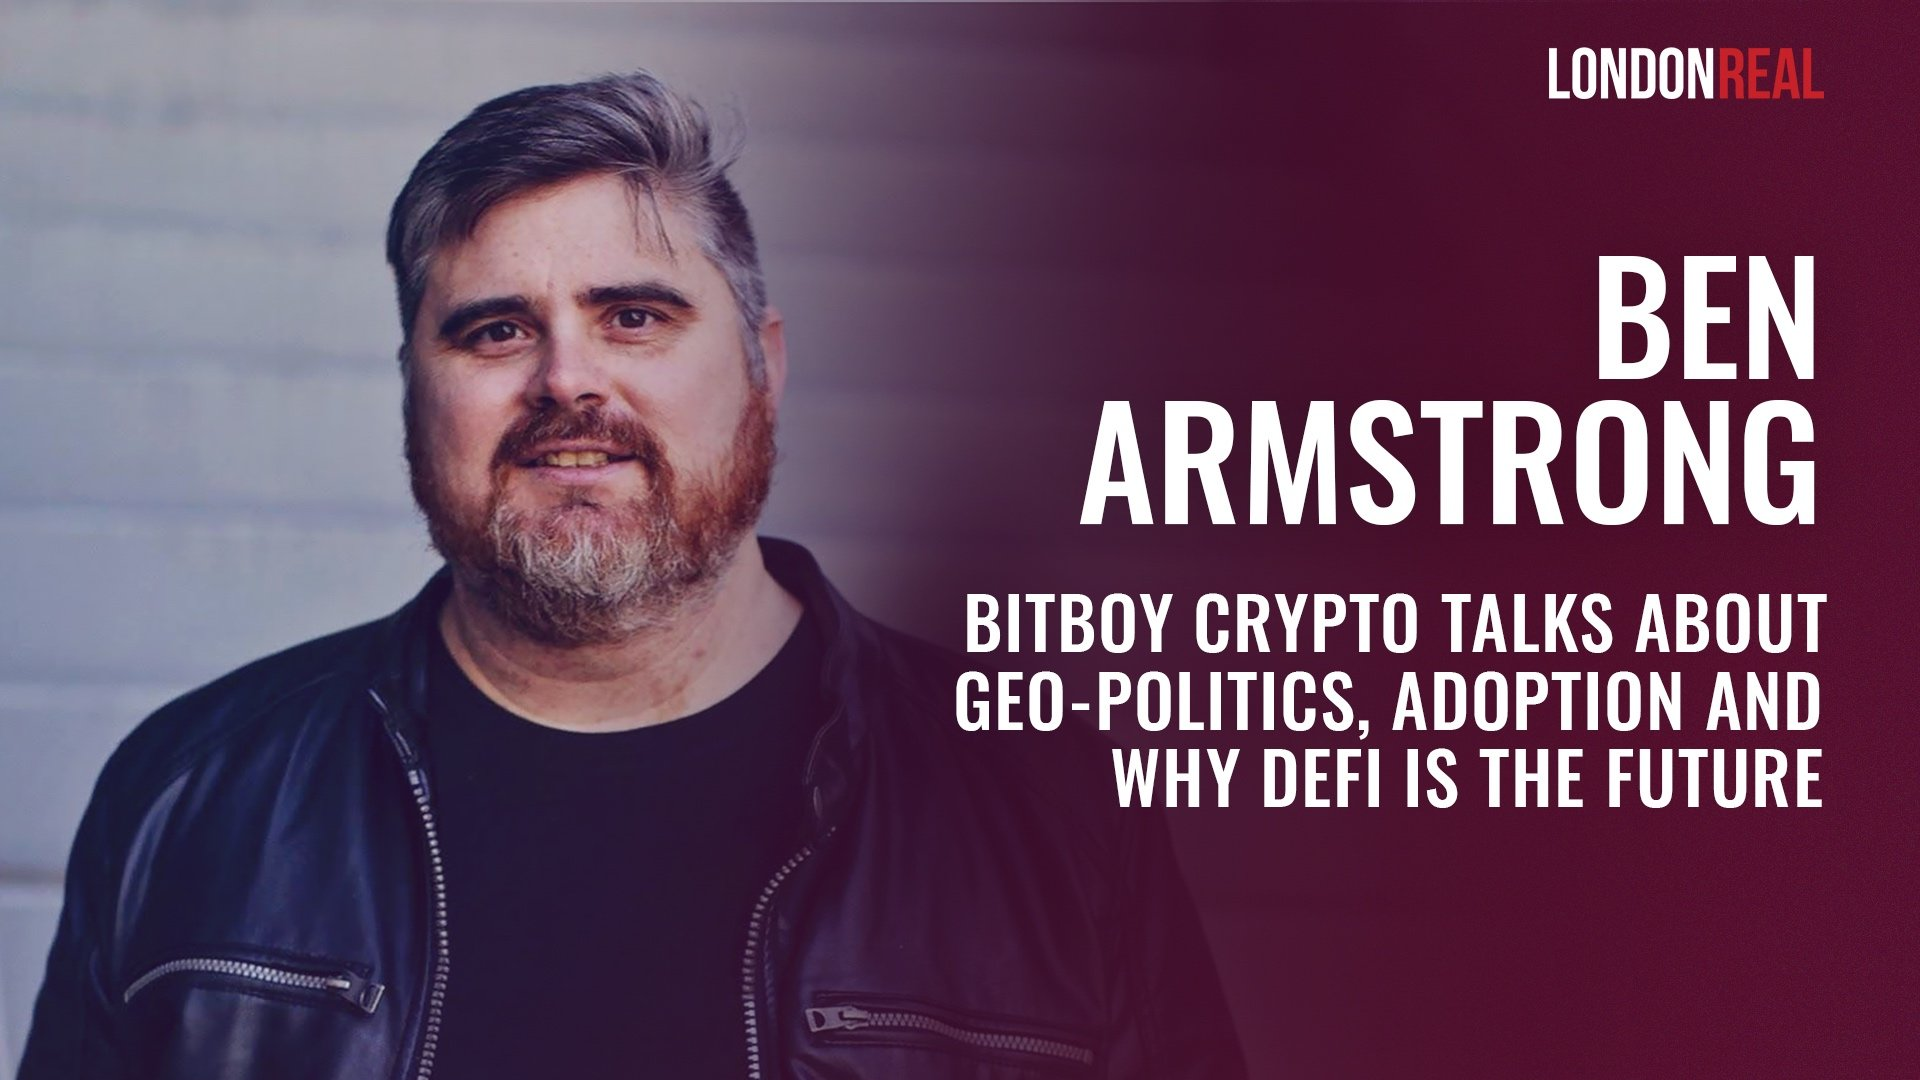 Ben Armstrong (AKA BitBoy Crypto) - The World's Most Popular Crypto Influencer Talks Geo-Politics, Adoption And Why Decentralised Finance Is The Future